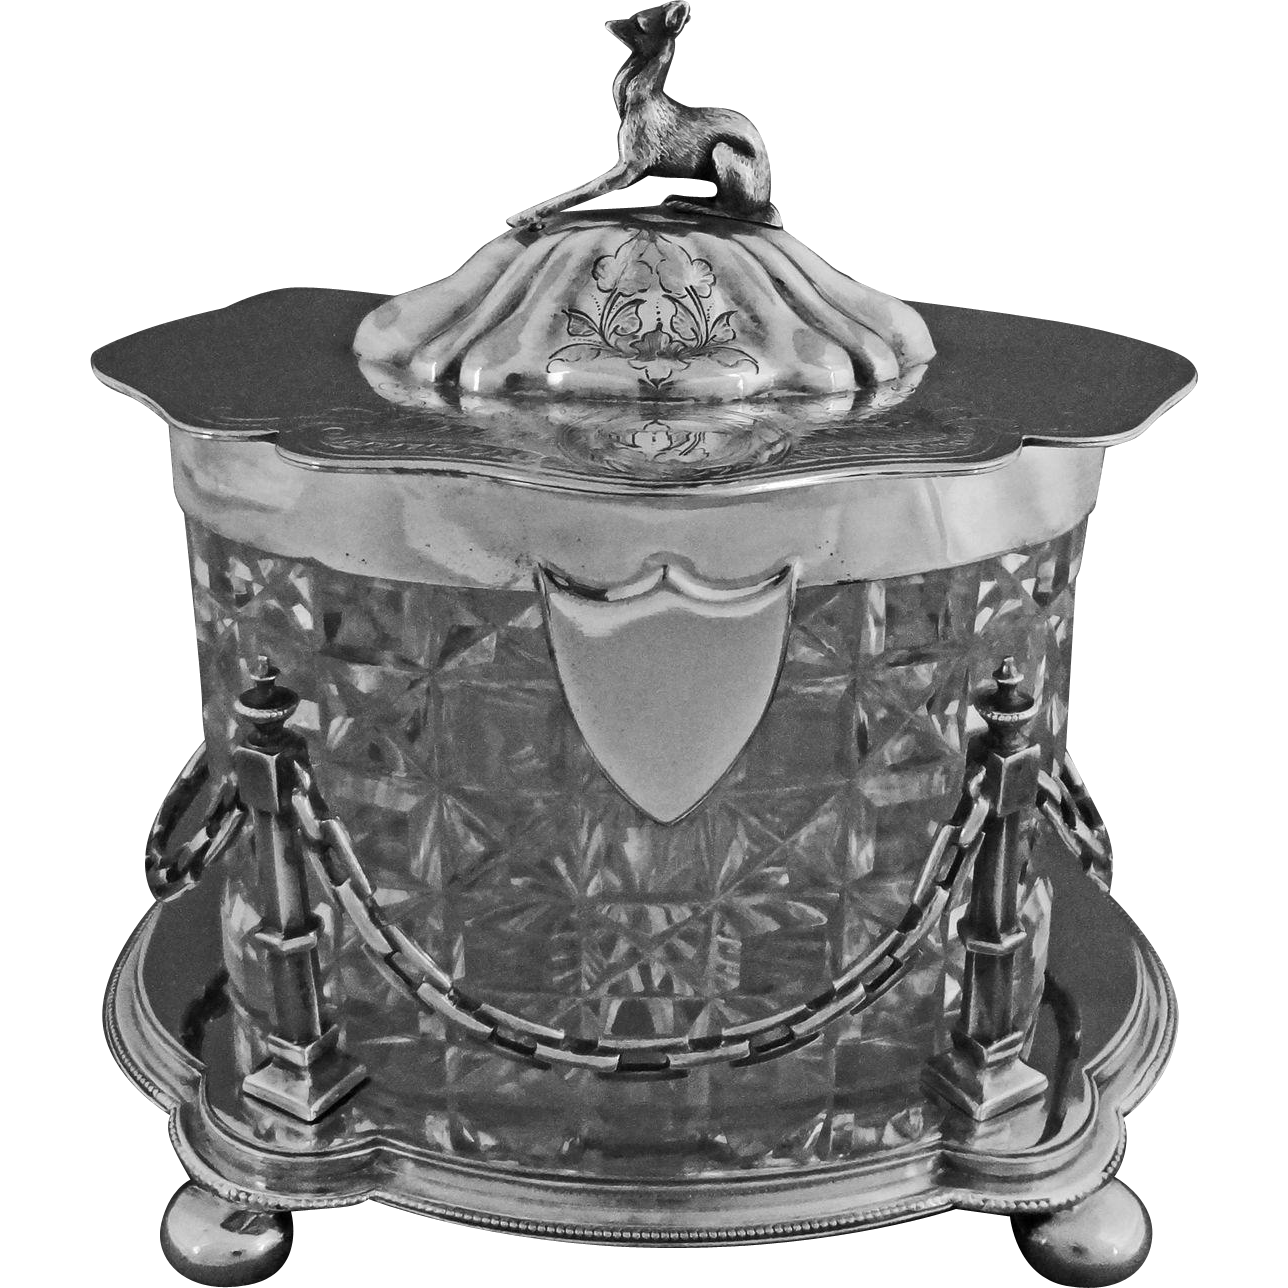 Antique English Lidded Biscuit Box Whippet Dog Finial Crystal and Silver Plate - 19th Century, England